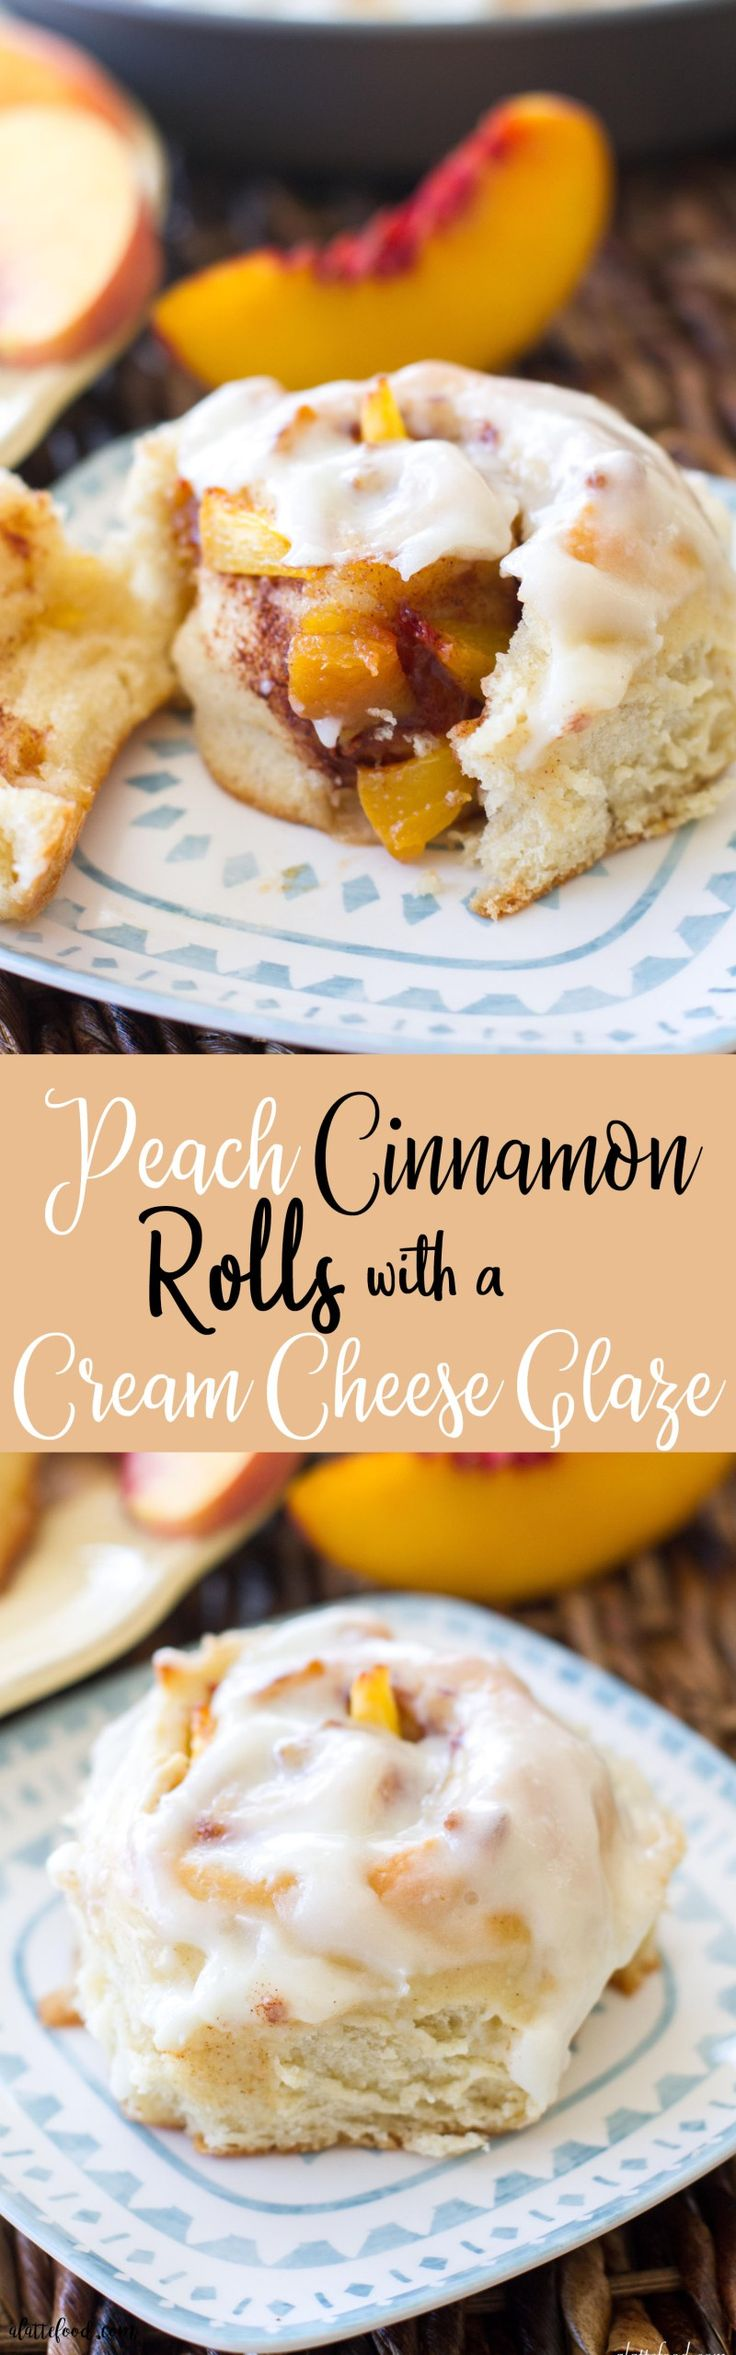 These fluffy, gooey cinnamon rolls are filled with fresh peaches, peach jam, and topped with a rich cream cheese glaze. These peaches and cream cinnamon rolls are love at first bite. Homemade peach cinnamon rolls are the perfect summer breakfast or make ahead breakfast!